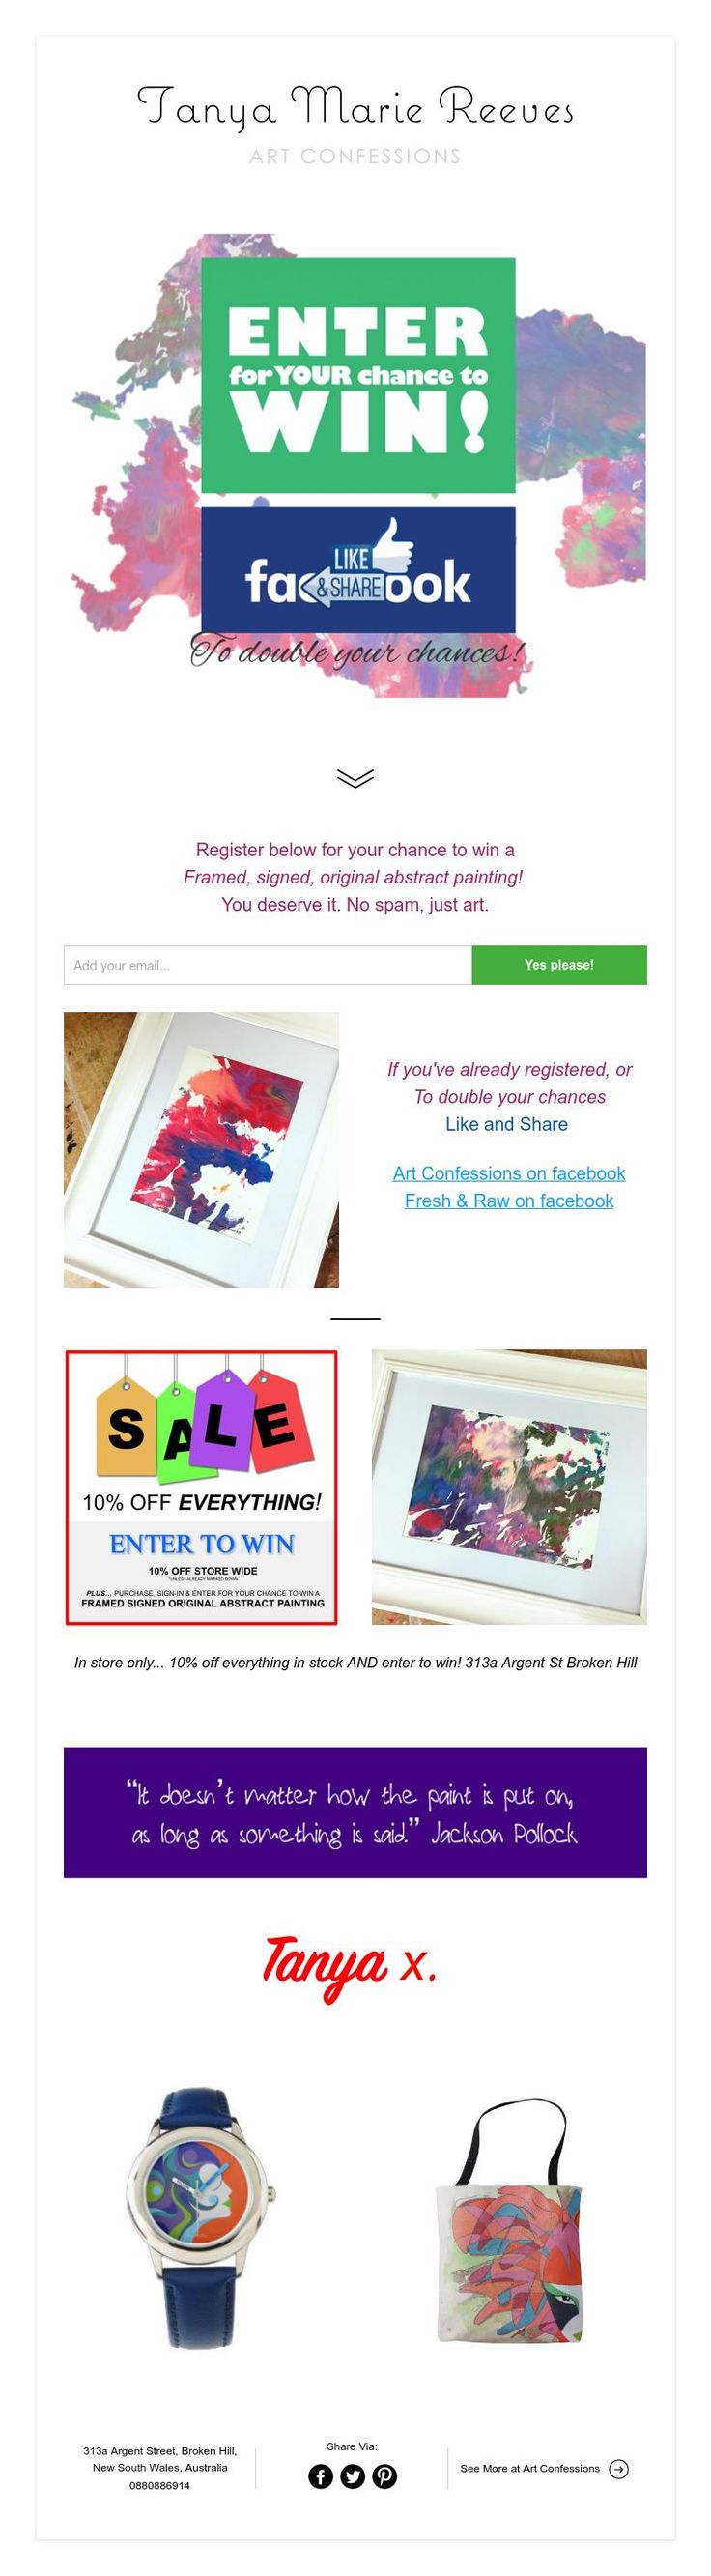 Enter to win a framed, signed, original abstract painting by Tanya Marie Reeves